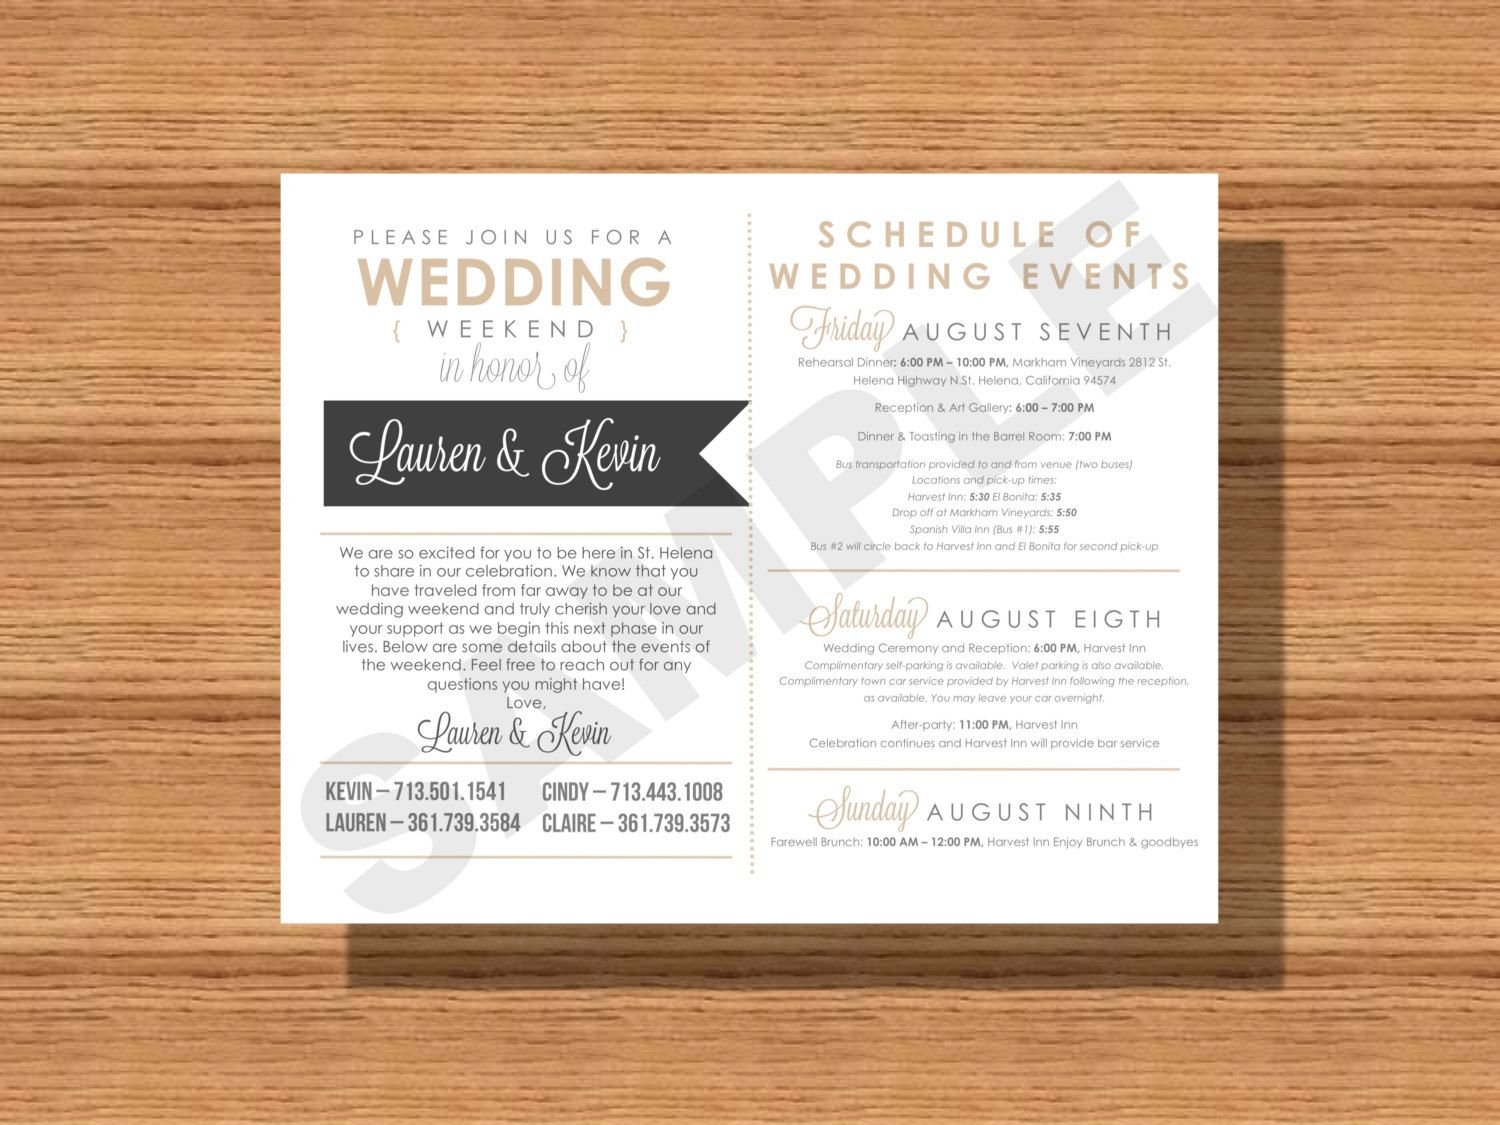 Wedding Weekend Itinerary Card Schedule Events For The Bridal